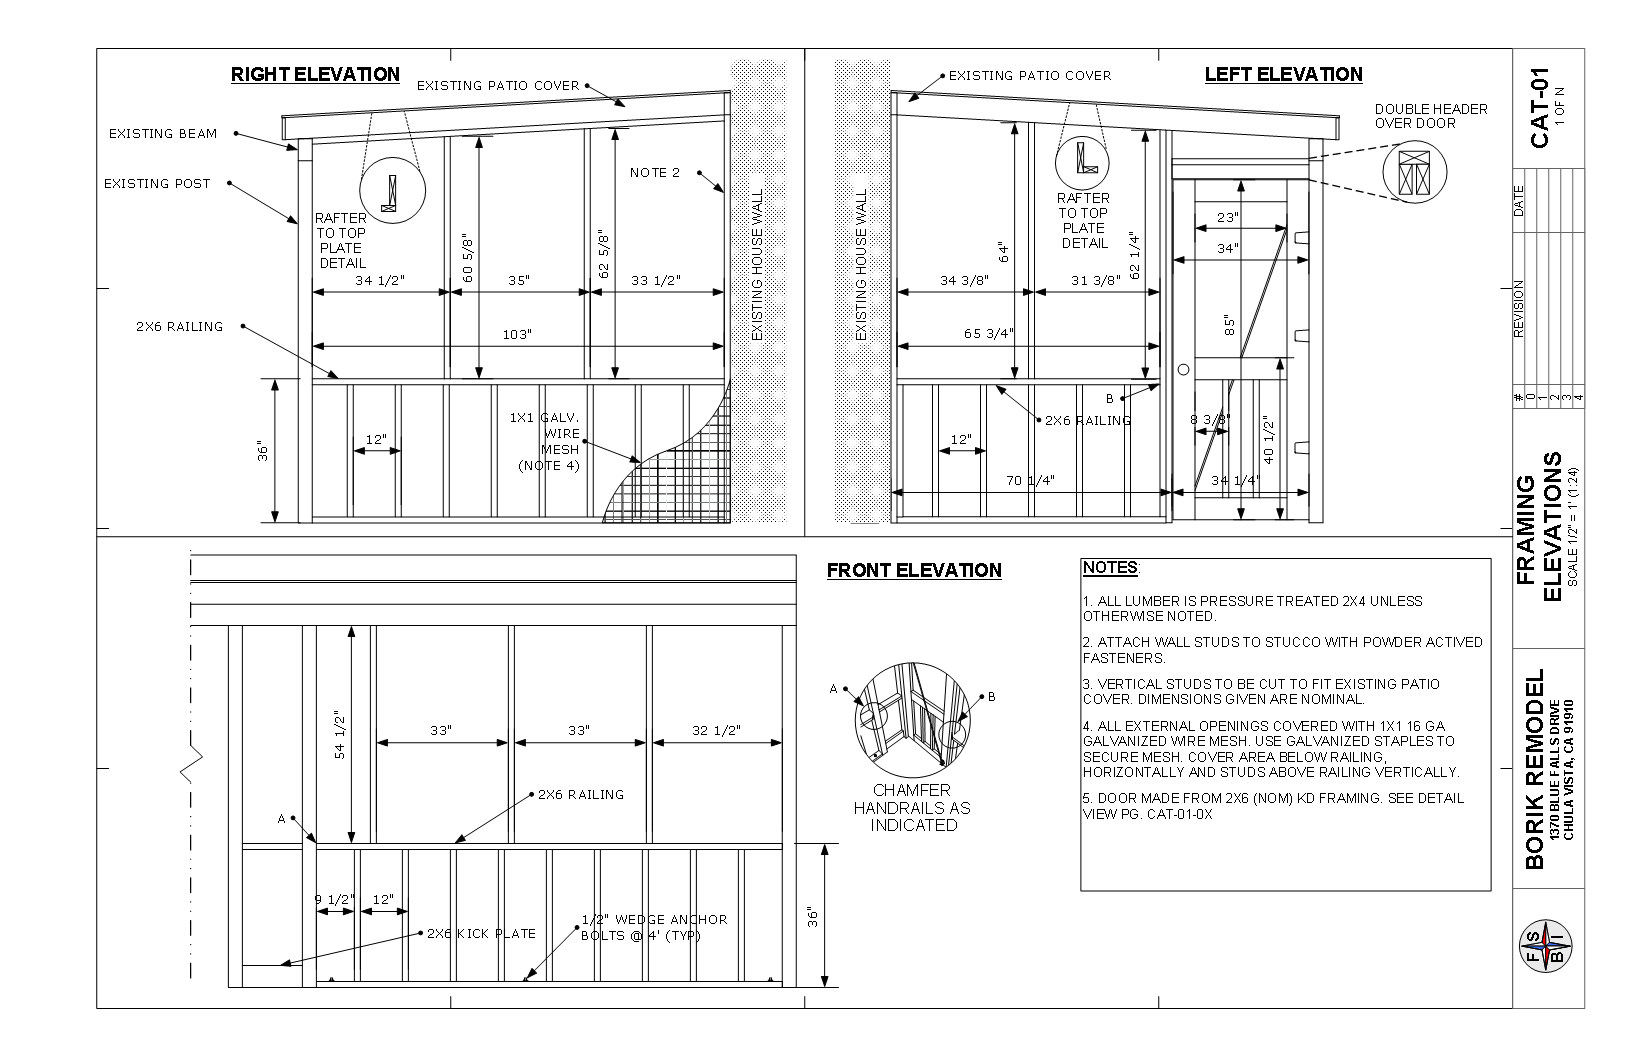 US20050098954 additionally How To Make A Cajon likewise Digital Tv Coat Hanger Antenna likewise 72600 Boiler Inspection In Furnace besides Bee Box Plans. on diy building plans